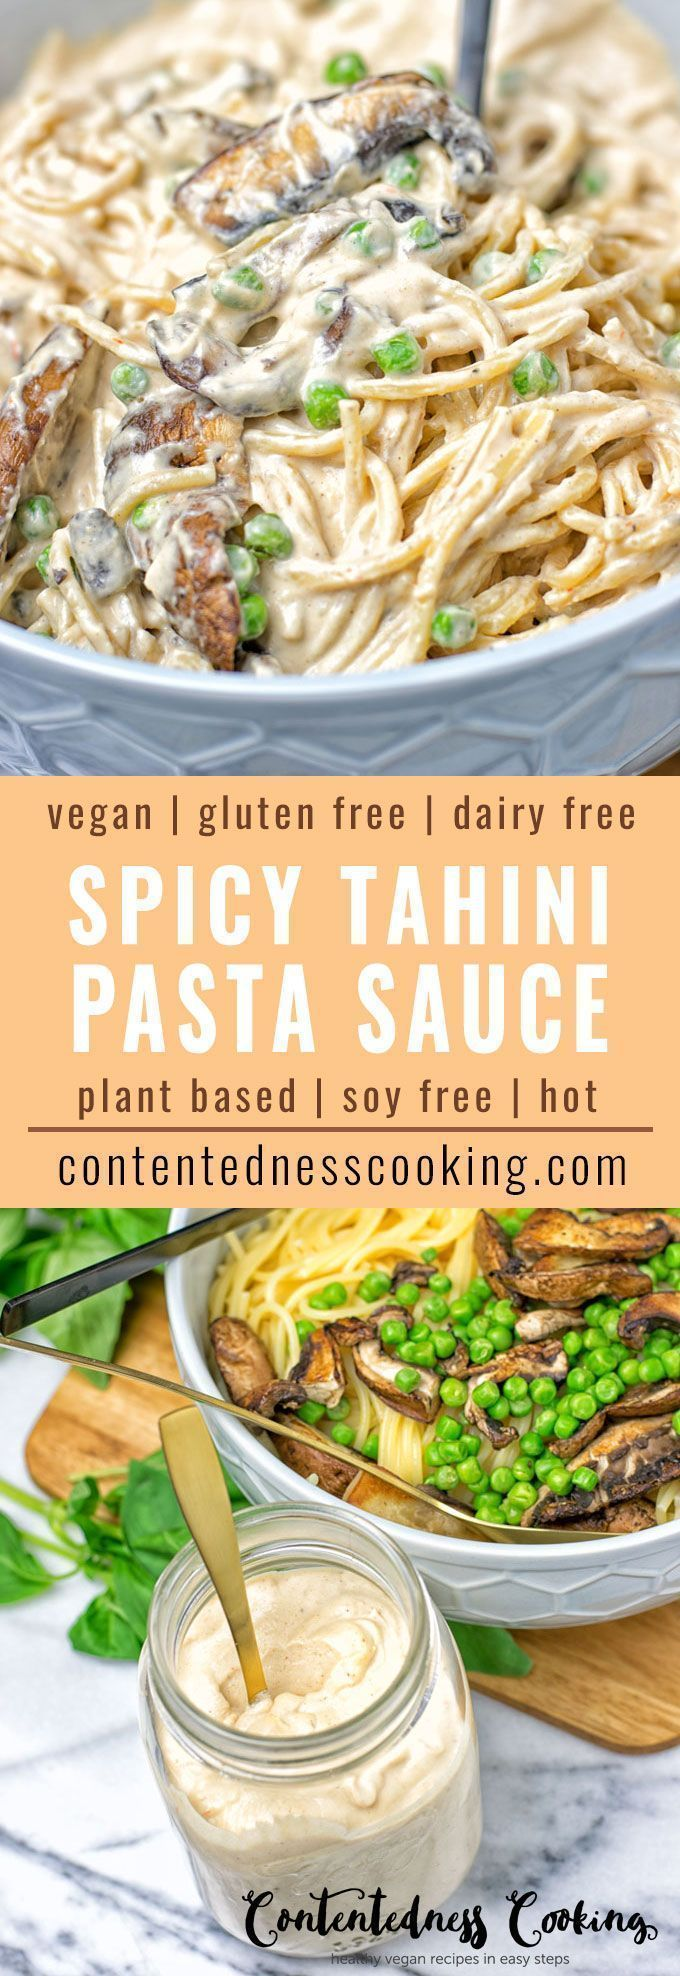 This Spicy Tahini Pasta Sauce requires only 4 ingredients for an incredibly easy lunch or dinner. Serve this with pasta, on burgers or wraps and so much more.